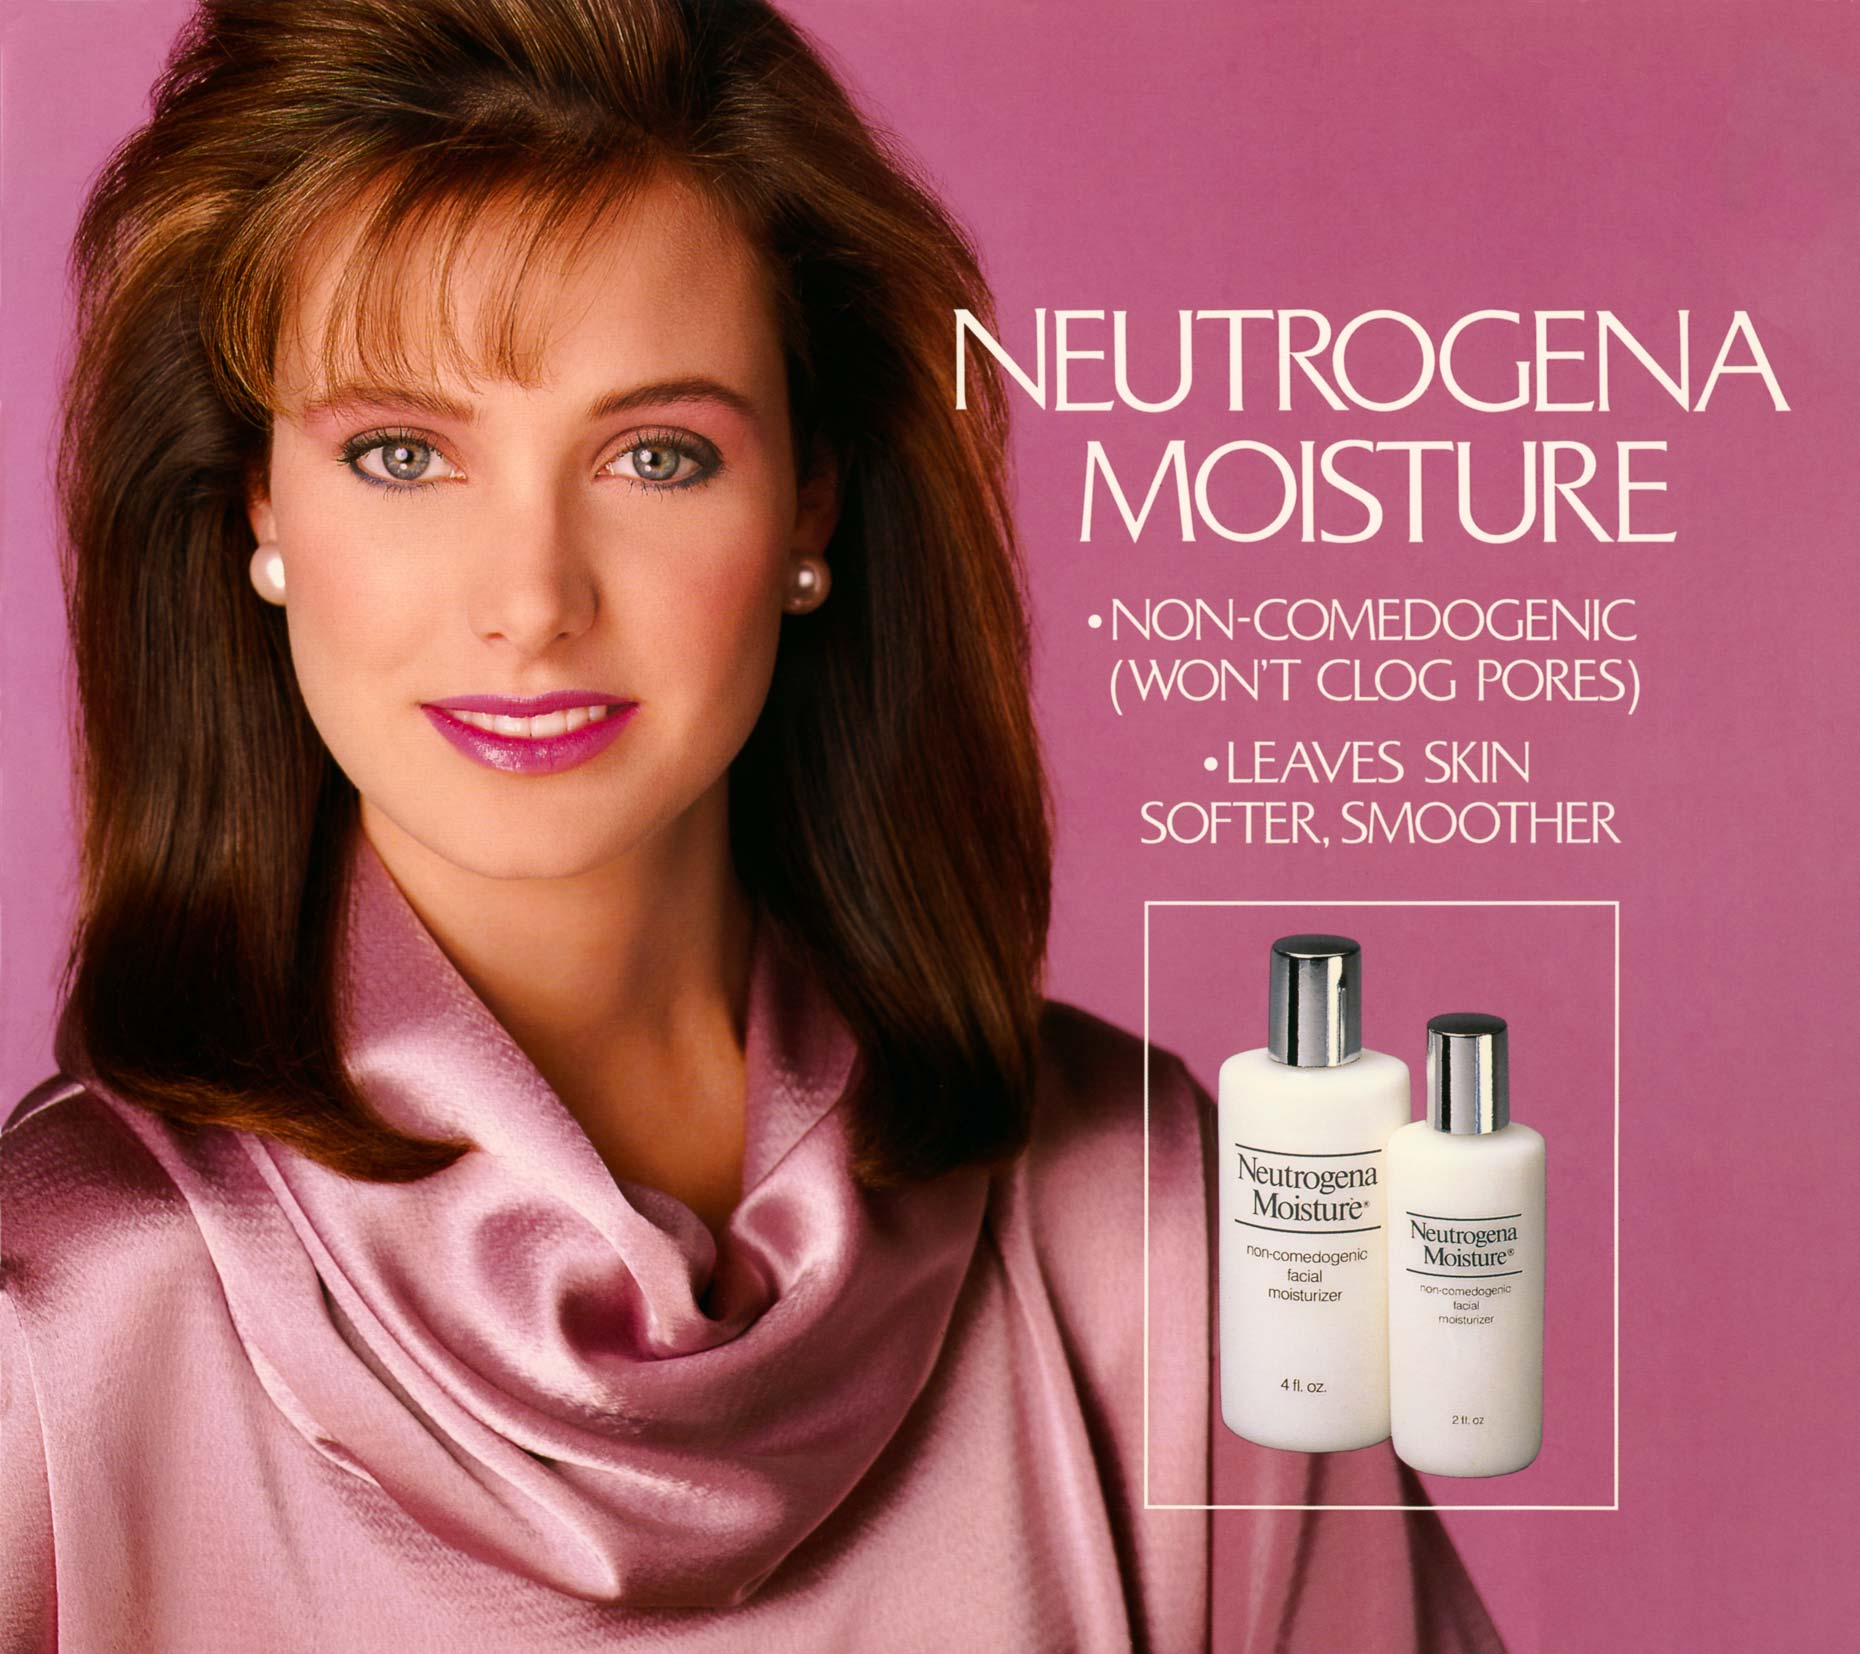 Neutrogena Advertsing